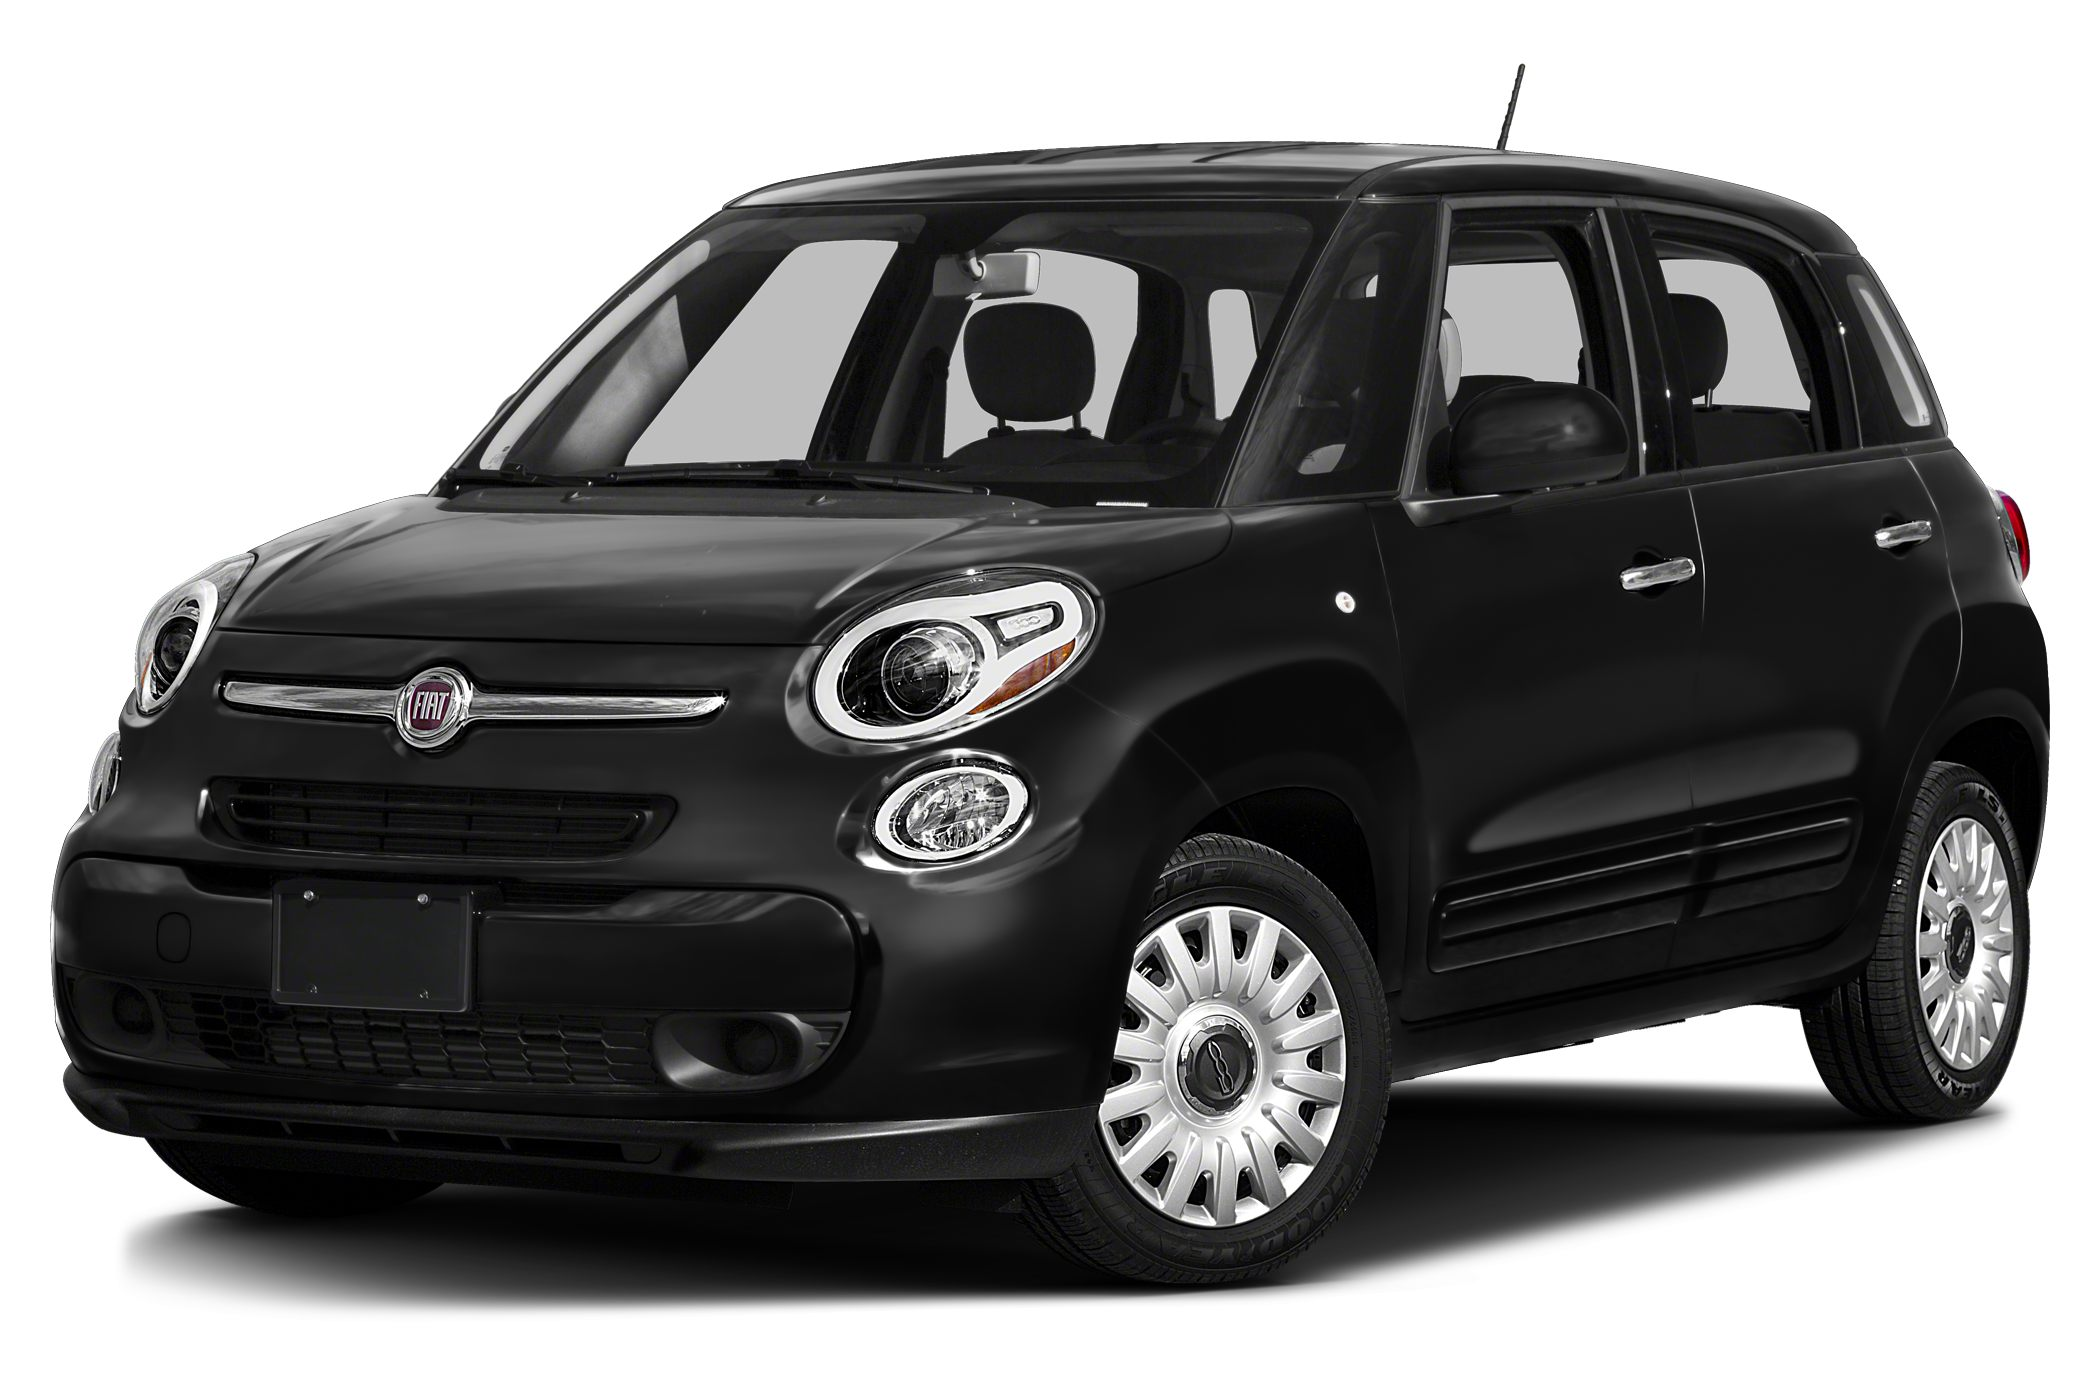 2014 Fiat 500L Easy Hatchback for sale in Pueblo for $14,785 with 16,876 miles.